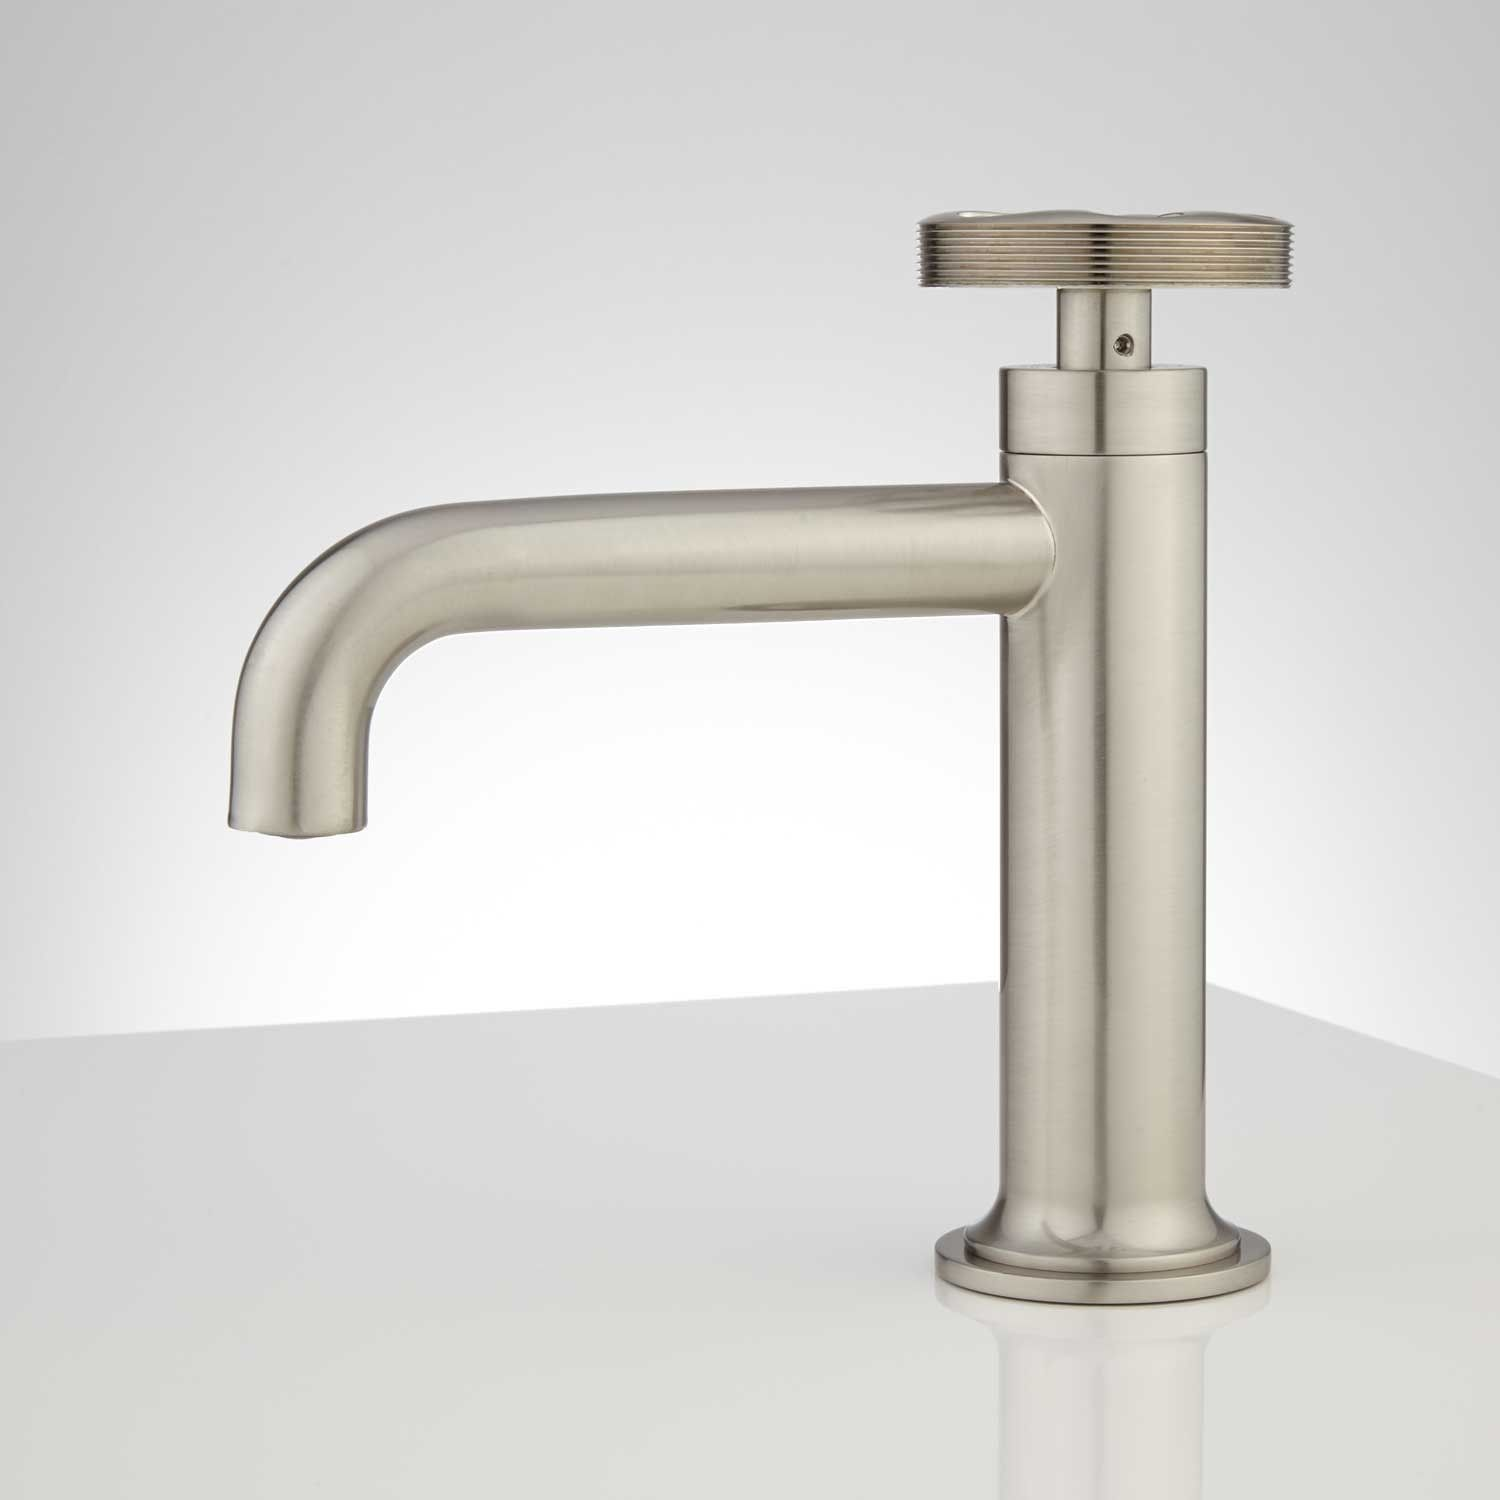 Edison Single Hole Brass Bathroom Faucet with Pop-Up Drain | Library ...